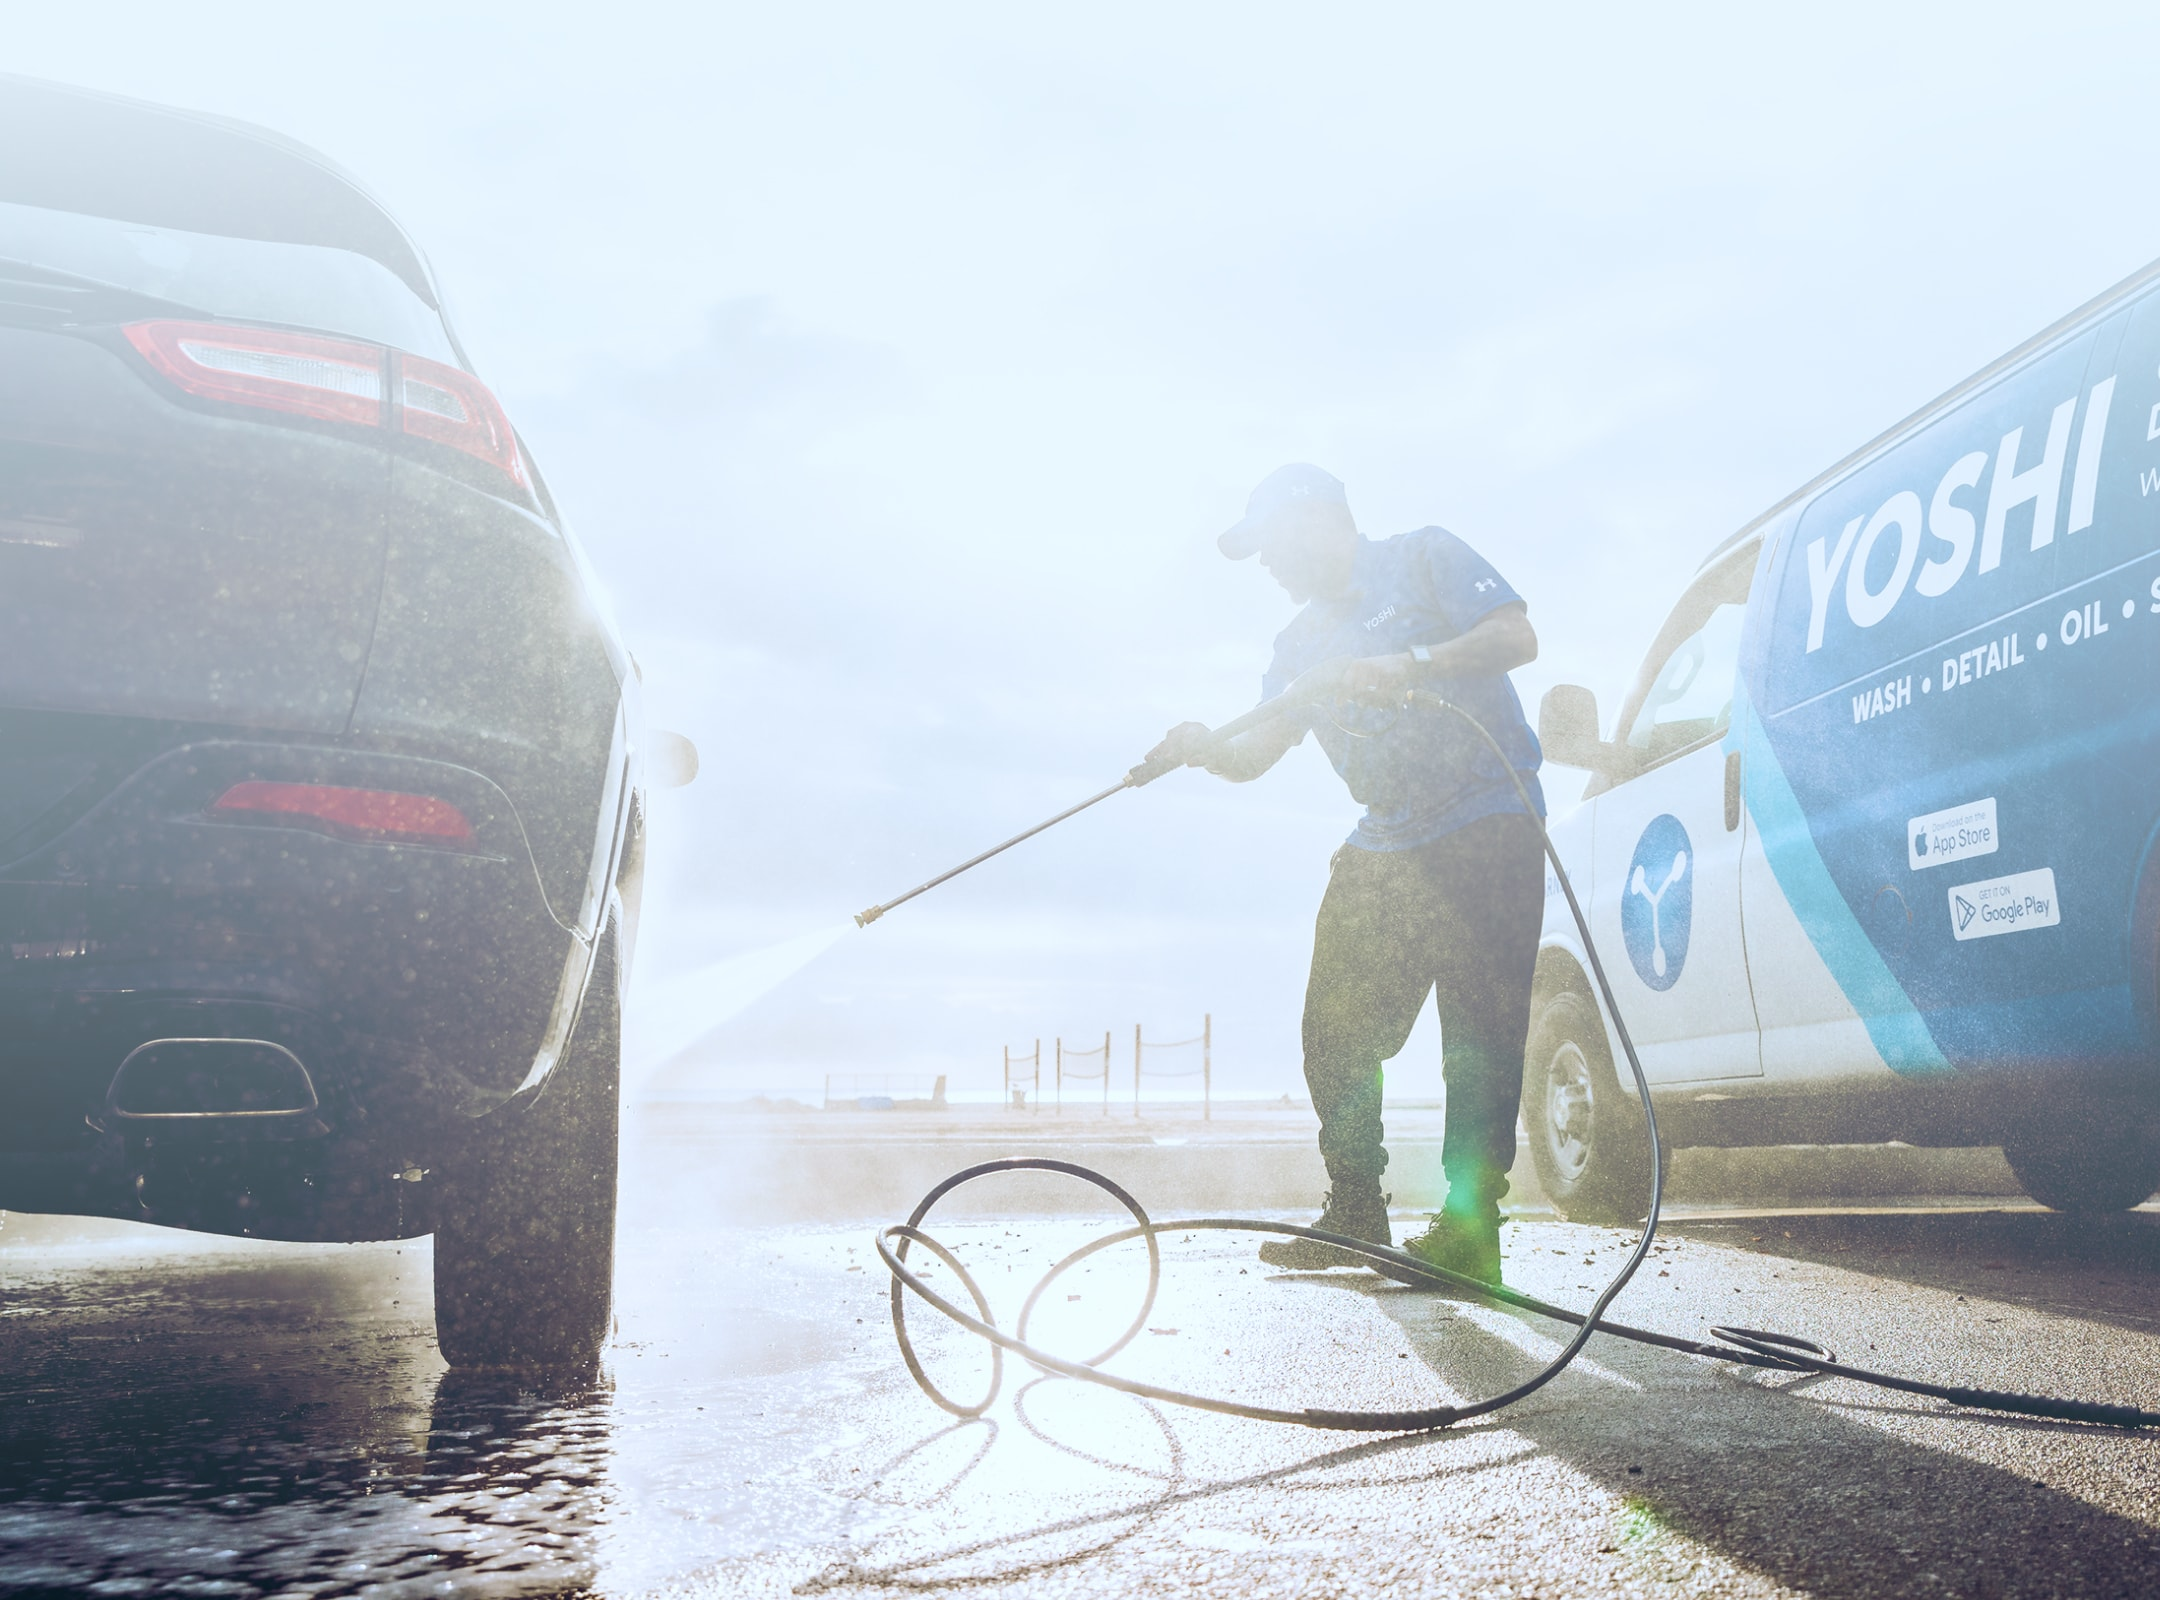 Yoshi gas, wash and service